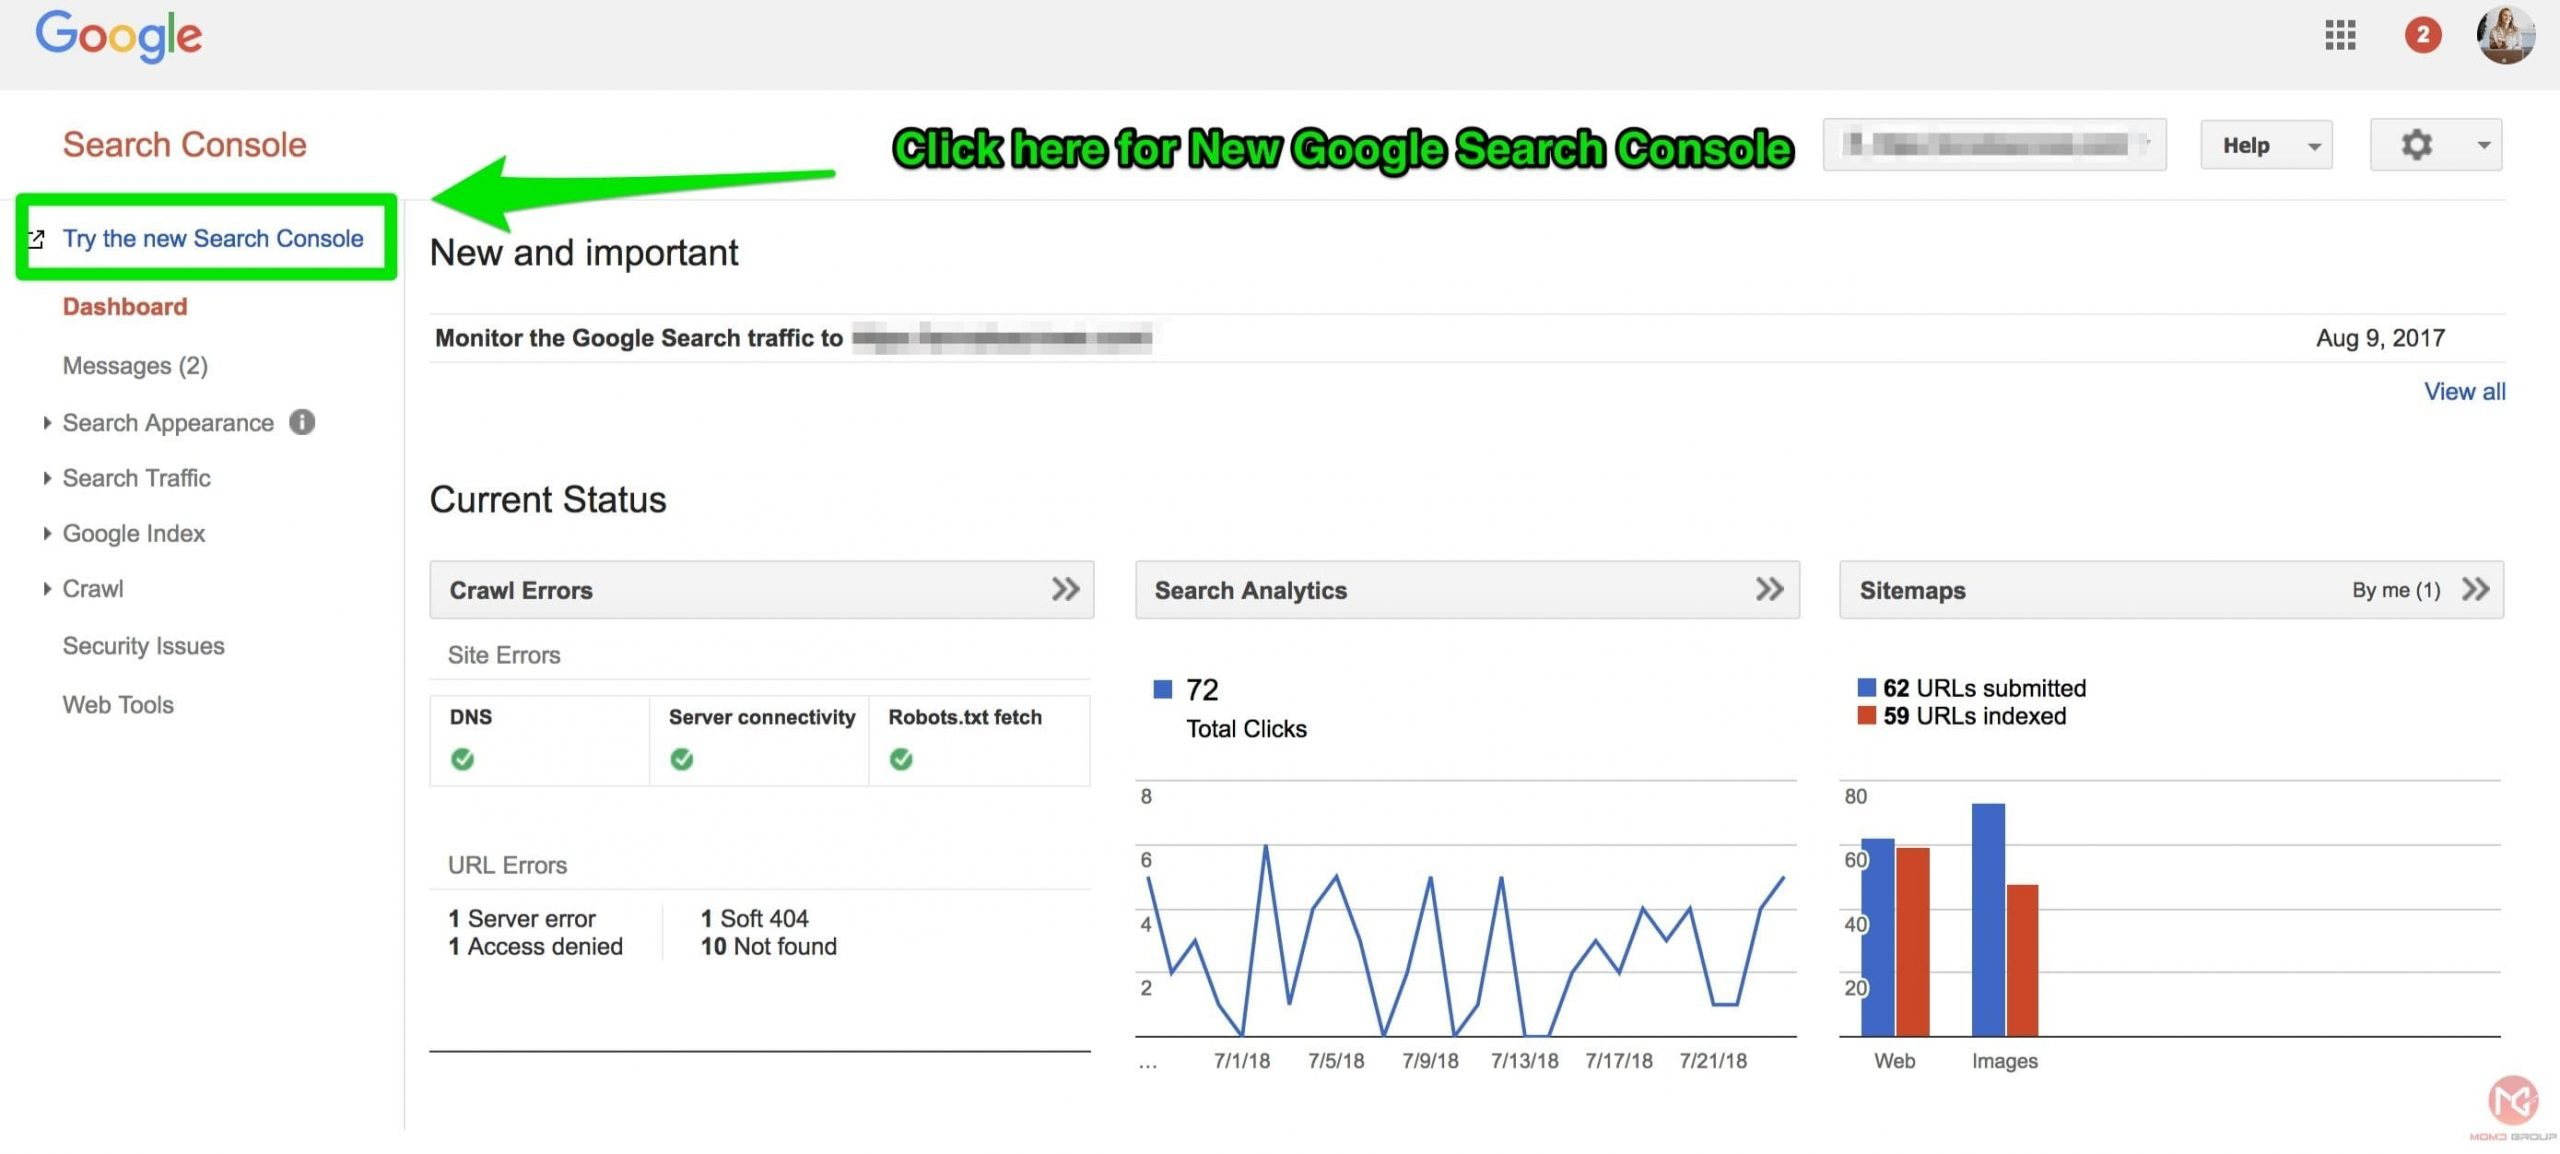 Giao-dien-cua-Google-Search-Console-scaled